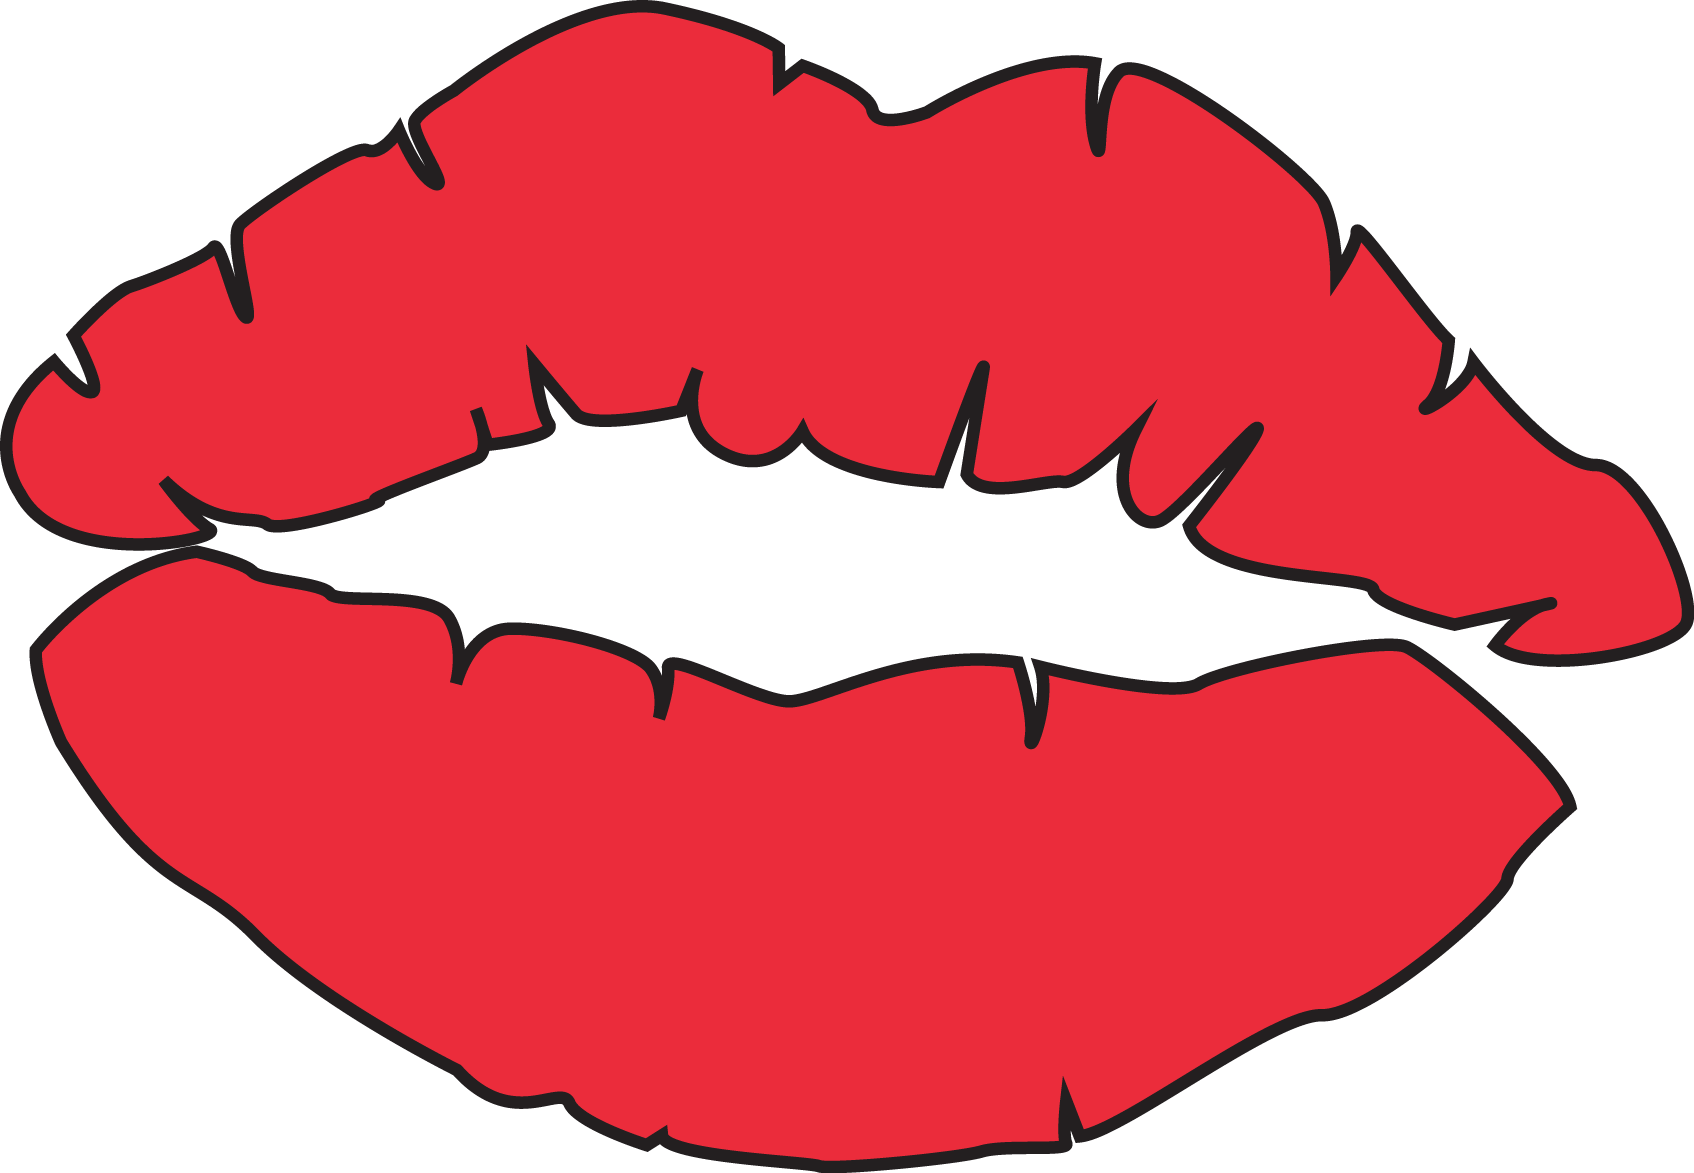 Free kissing lips download. Lip clipart picture transparent